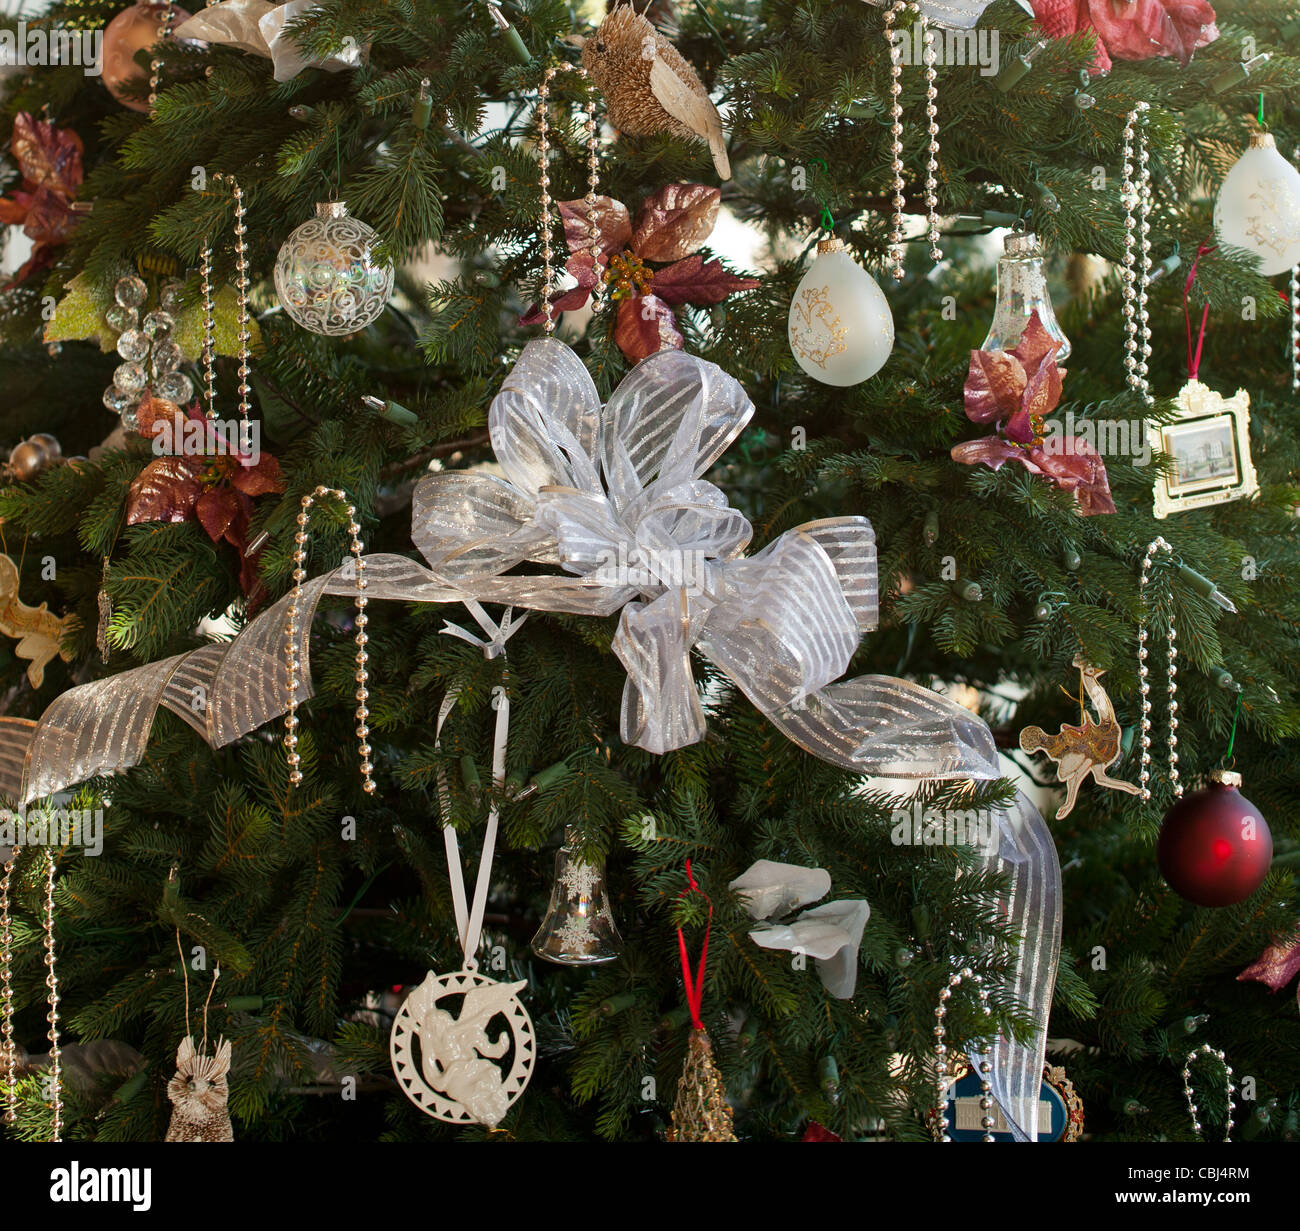 Christmas Tree Decorated With Silver And White Ribbons And Ornaments